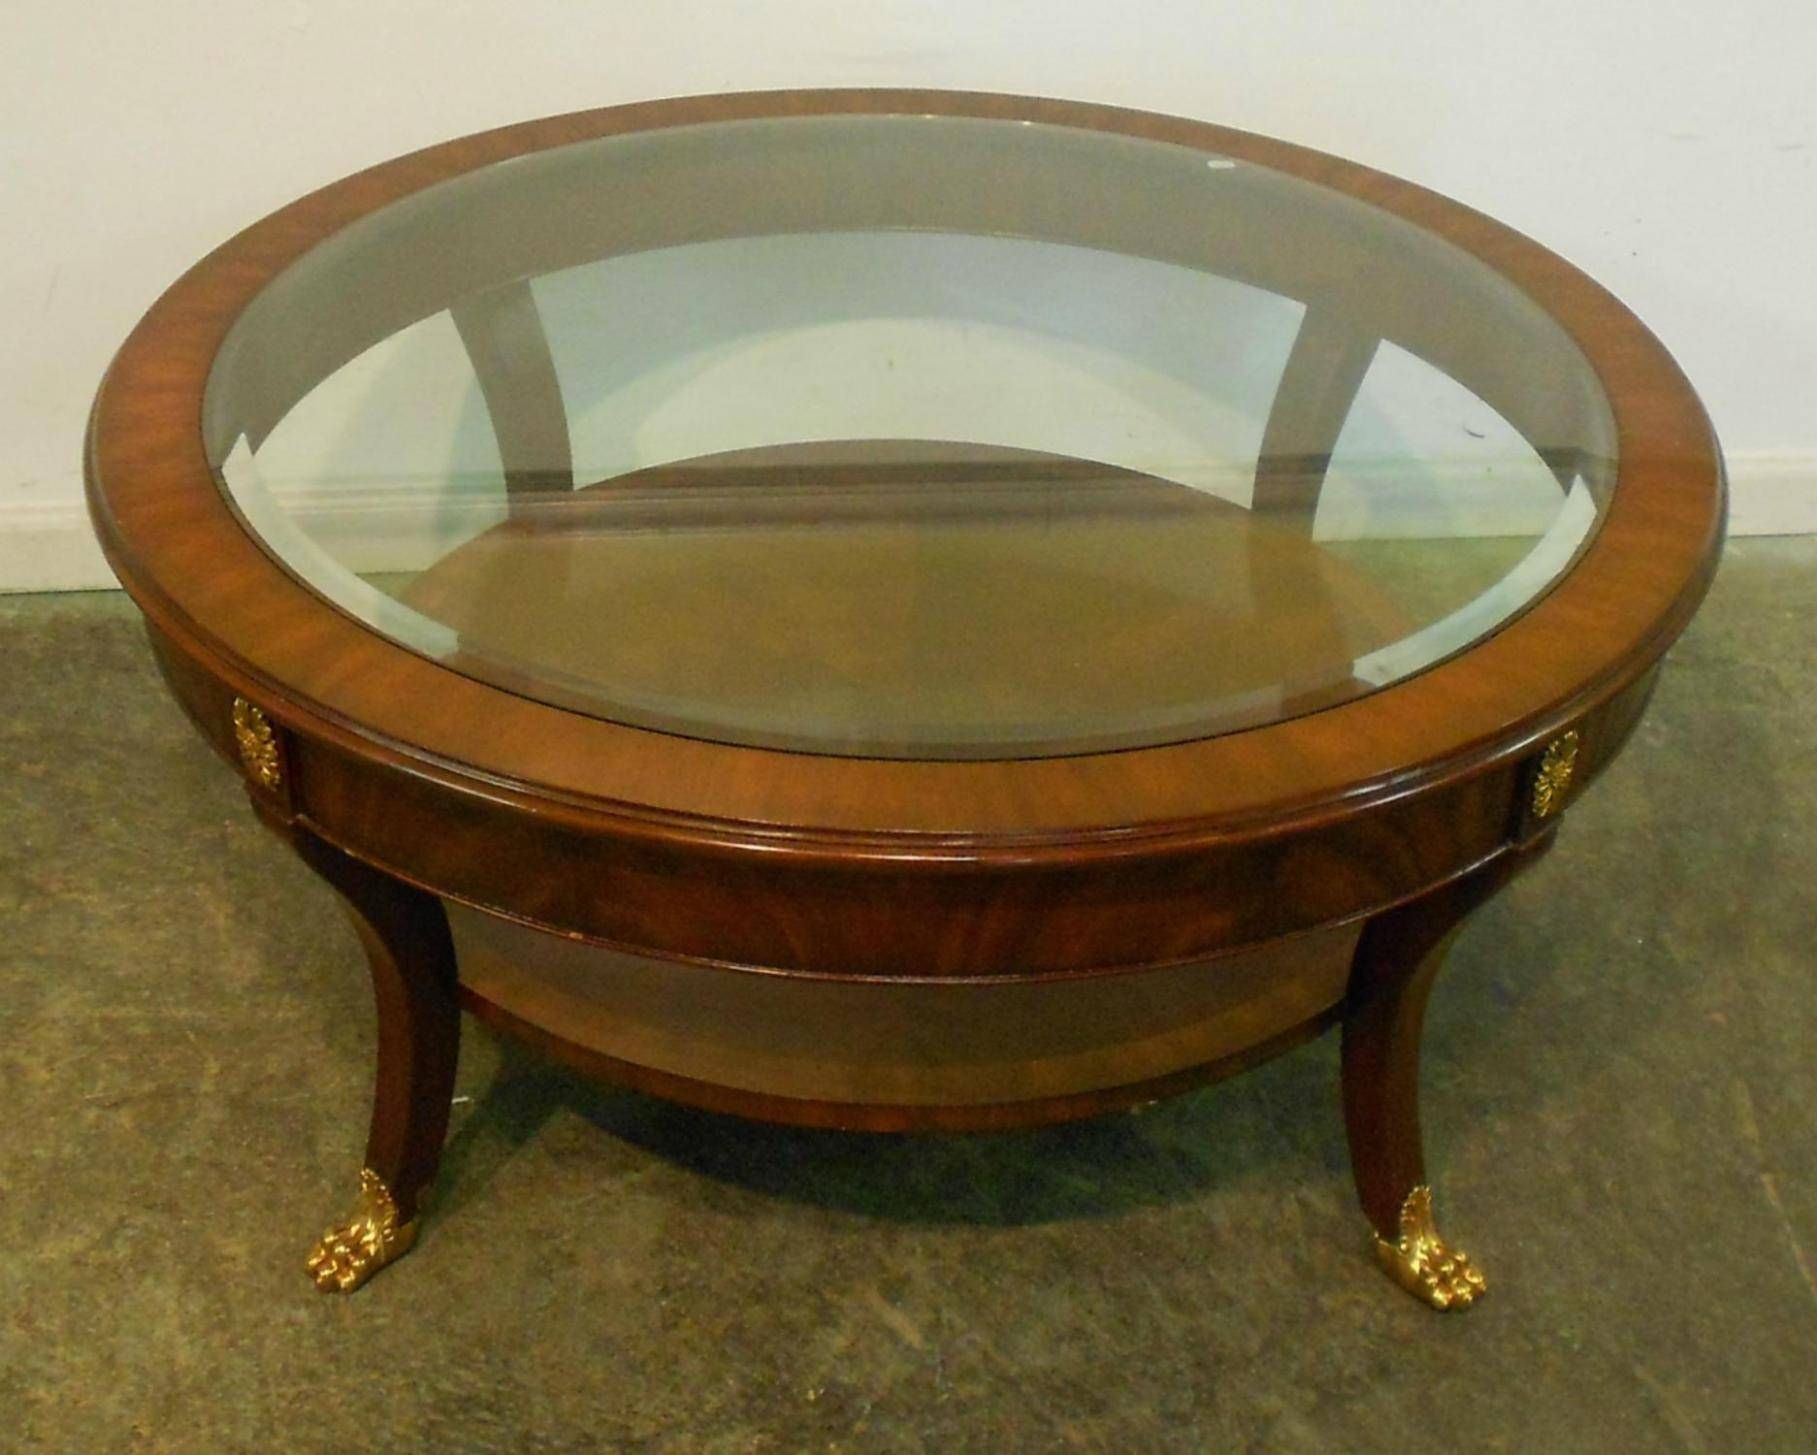 Glass Coffee Tables: Baffling Small Round Glass Top Coffee Table with Round Wood and Glass Coffee Tables (Image 8 of 15)